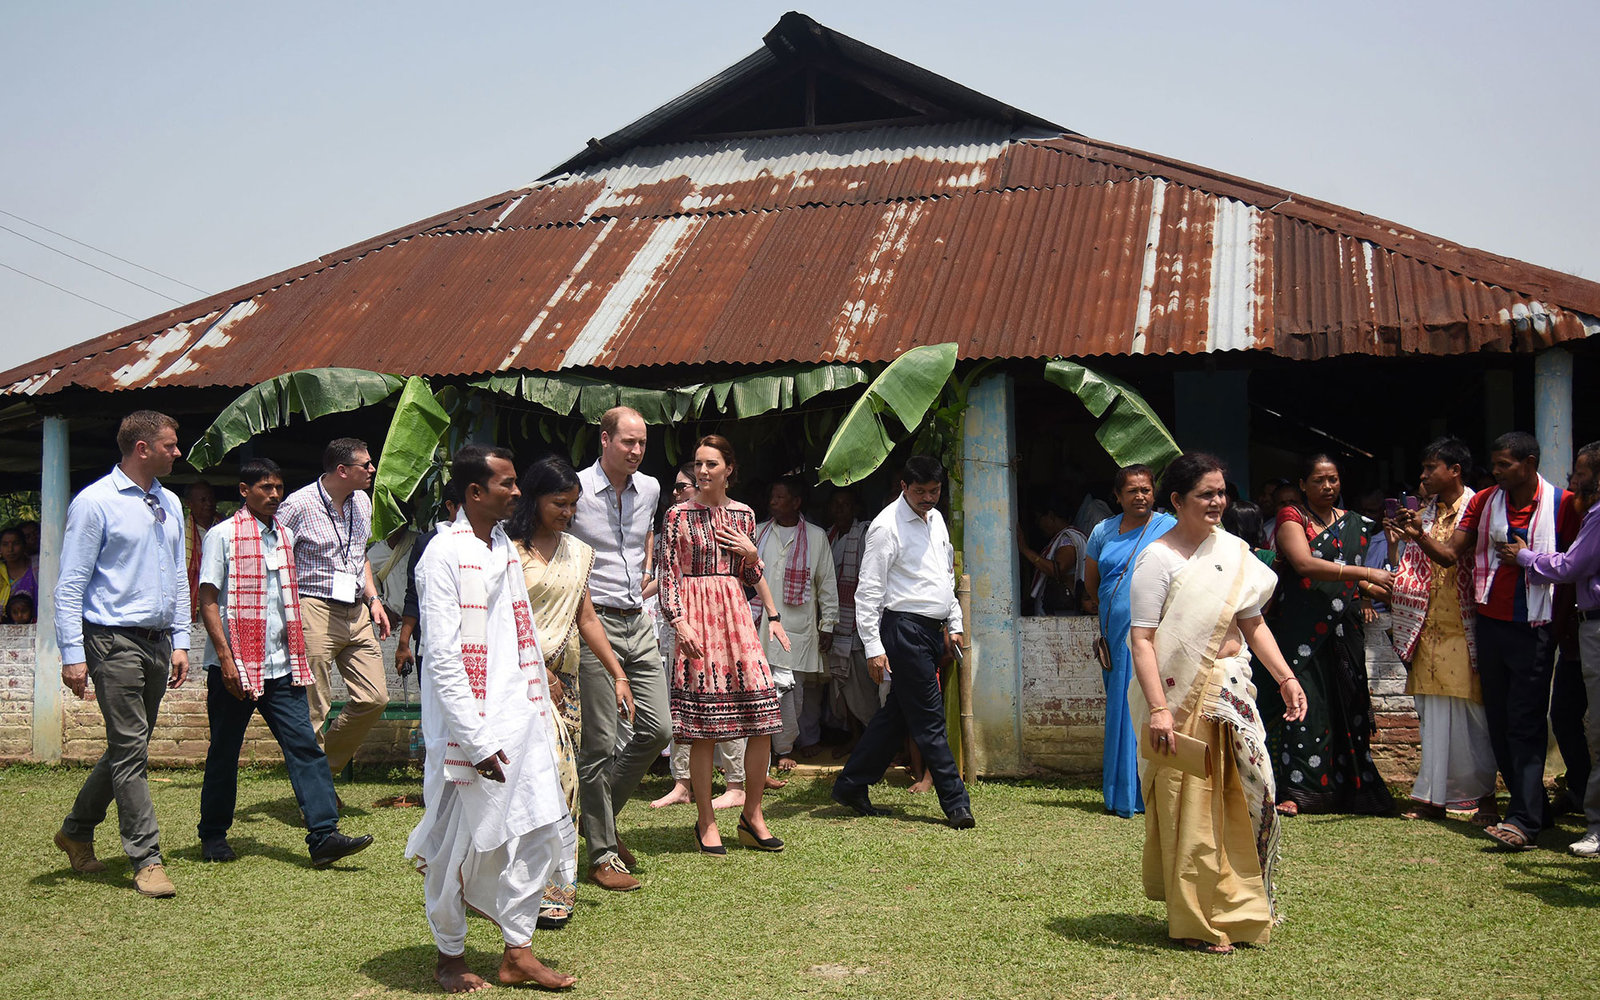 Britain's Prince William (centre L), Duke of Cambridge, and Catherine (centre R), Duchess of Cambridge, emerge after visiting a 'Namghar', an Assamese site of congregational worship in Panbari village, in Kaziranga, some 250 km from Guwahati, the capital